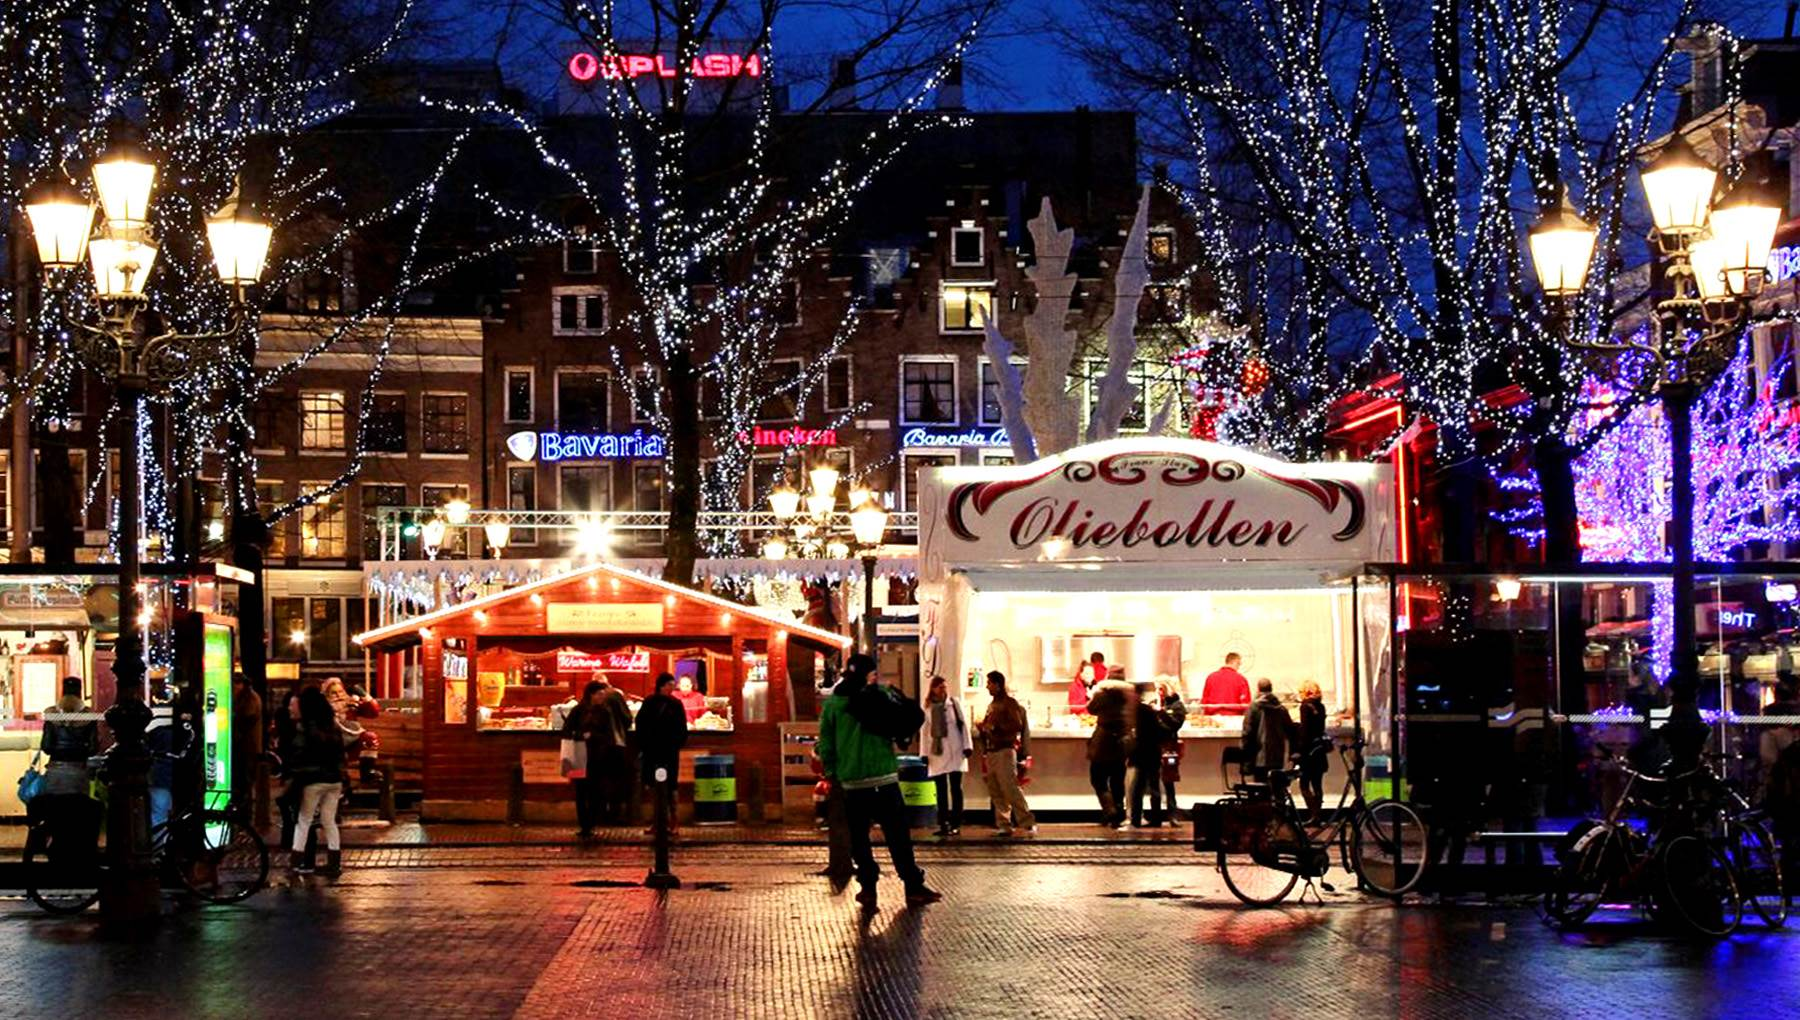 Things To Do In Nj For Christmas.Christmas In Amsterdam I Amsterdam